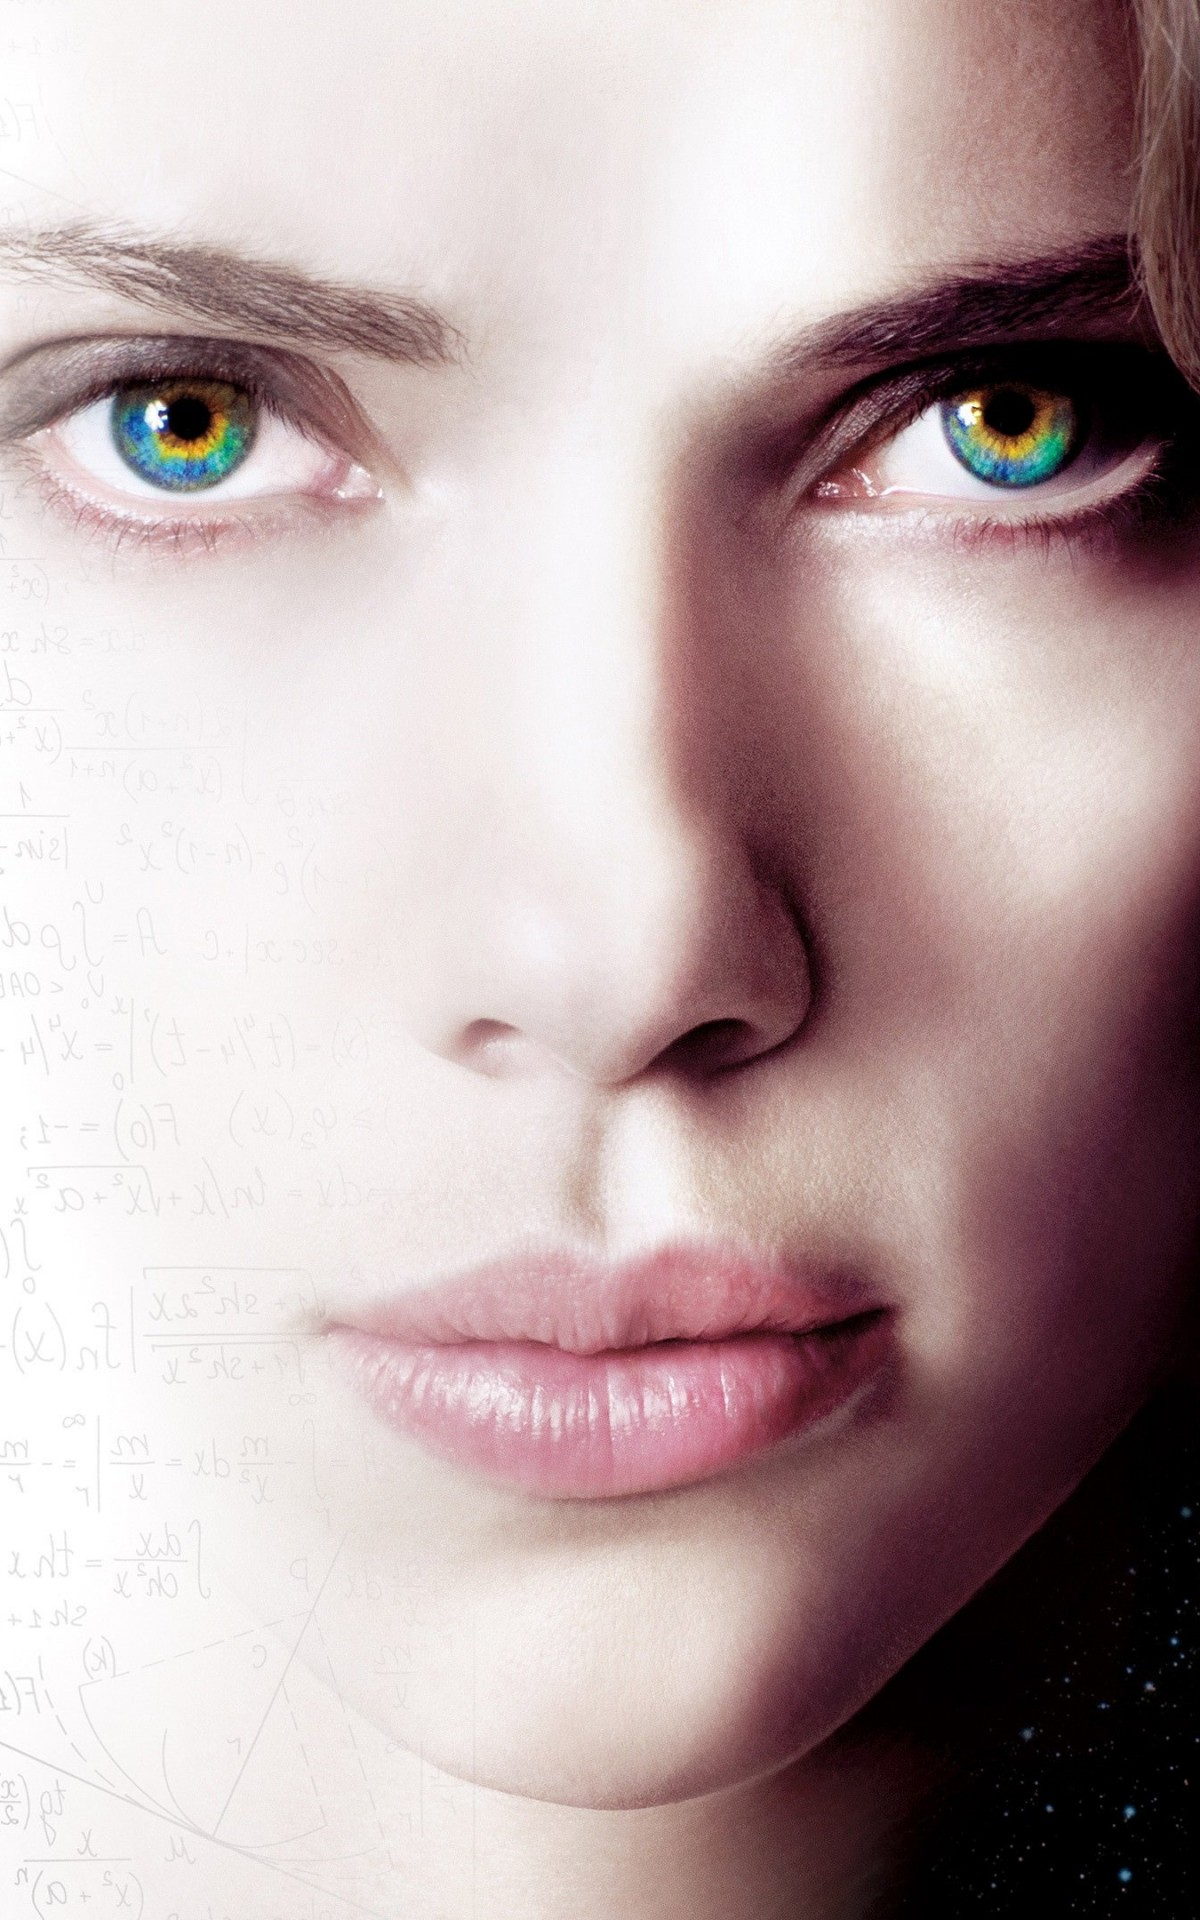 Scarlett Johansson As Lucy Wallpaper for Amazon Kindle Fire HDX